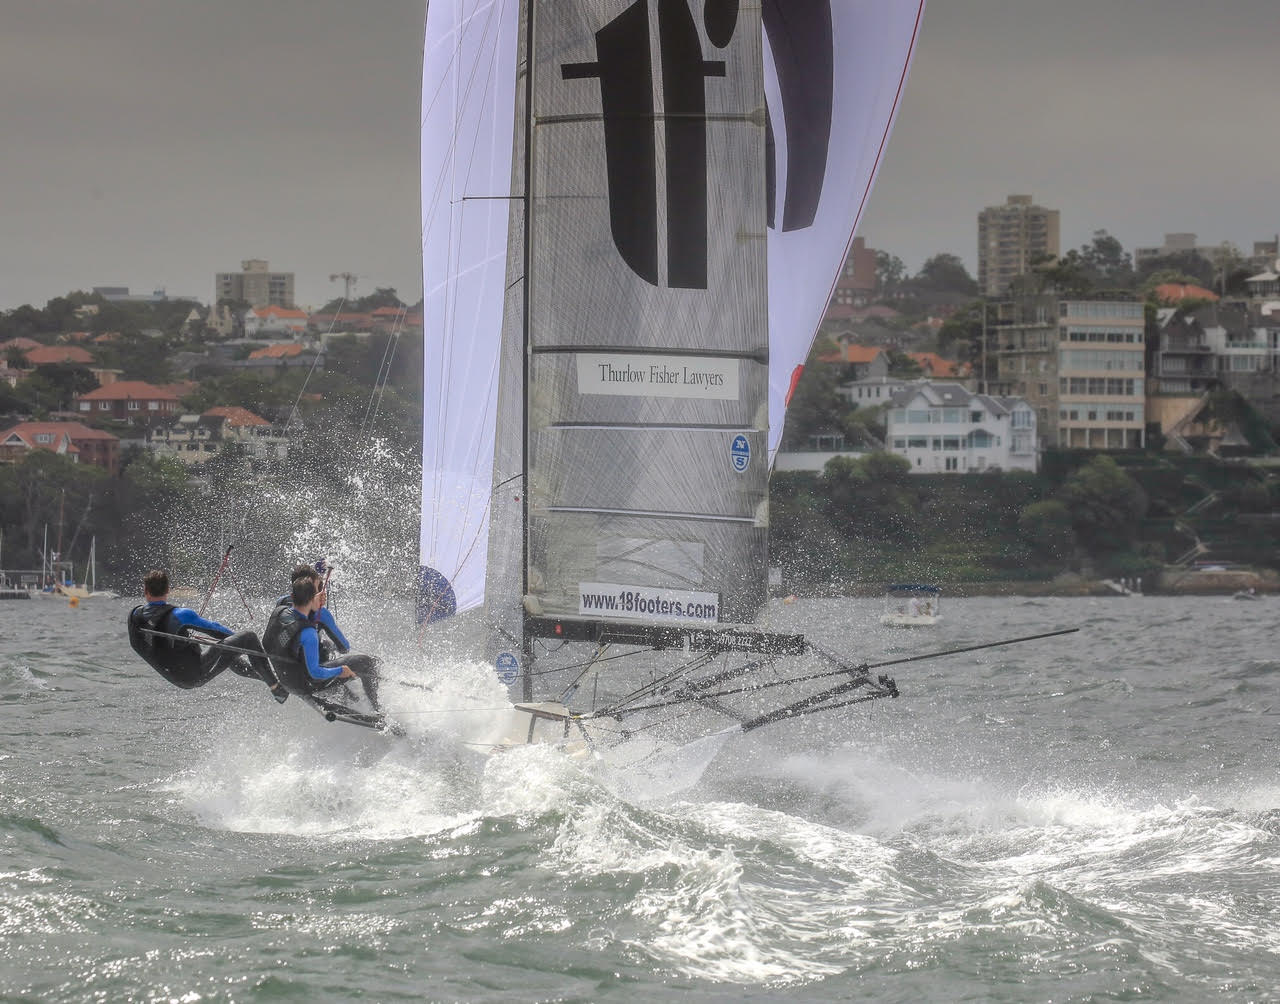 18 footers | Thurlow Fisher Lawyers in ominous form